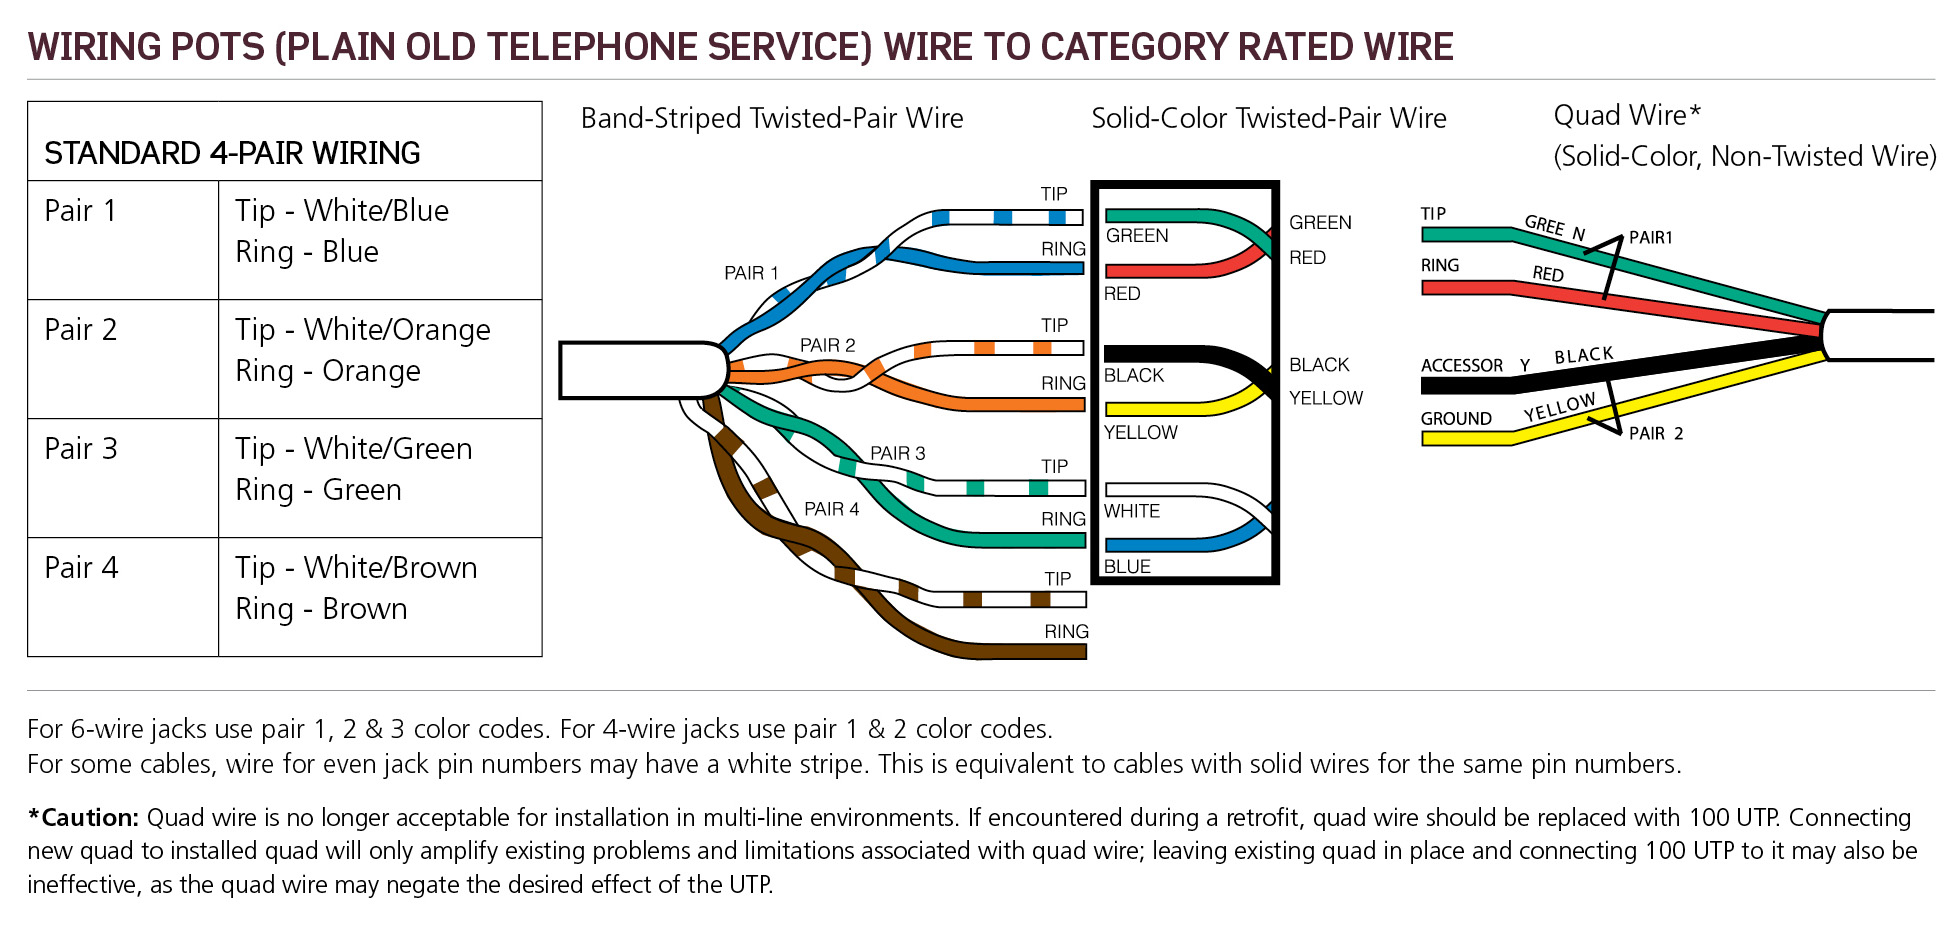 pots plain old telephone service wiring leviton made easy blog garage wiring standard are you staring [ 1960 x 936 Pixel ]